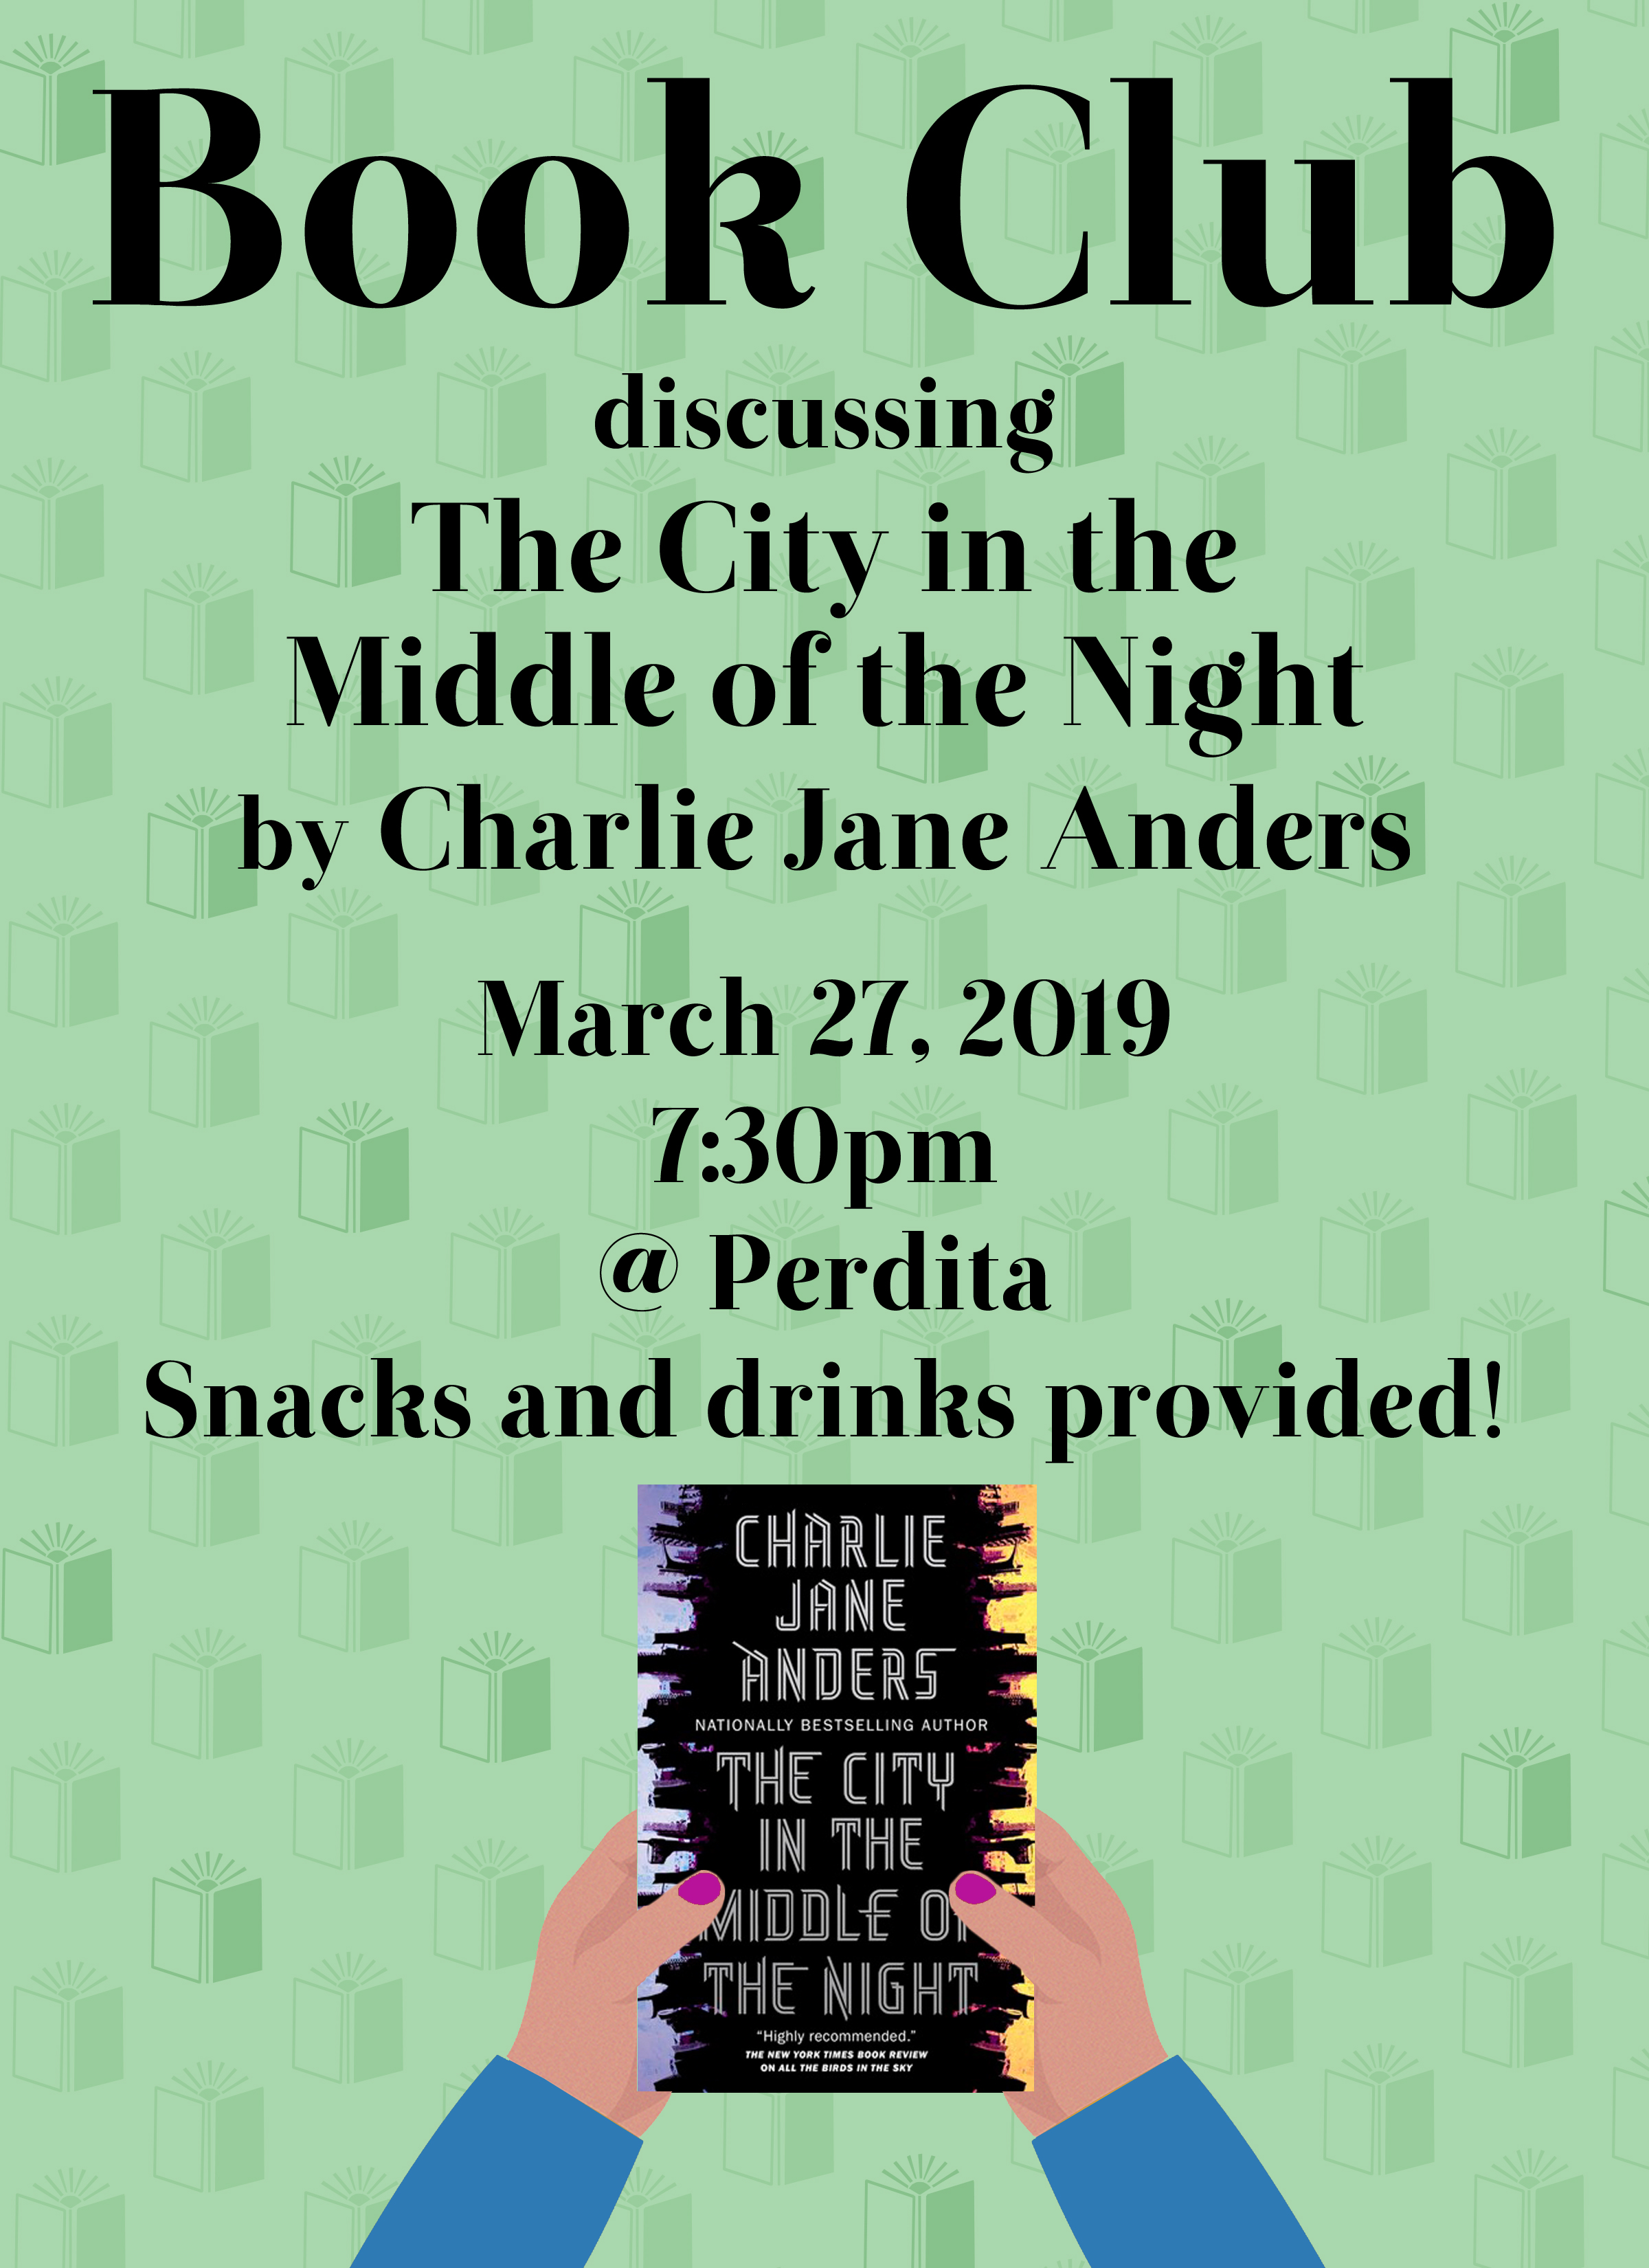 book club invite perdita city middle night.jpg